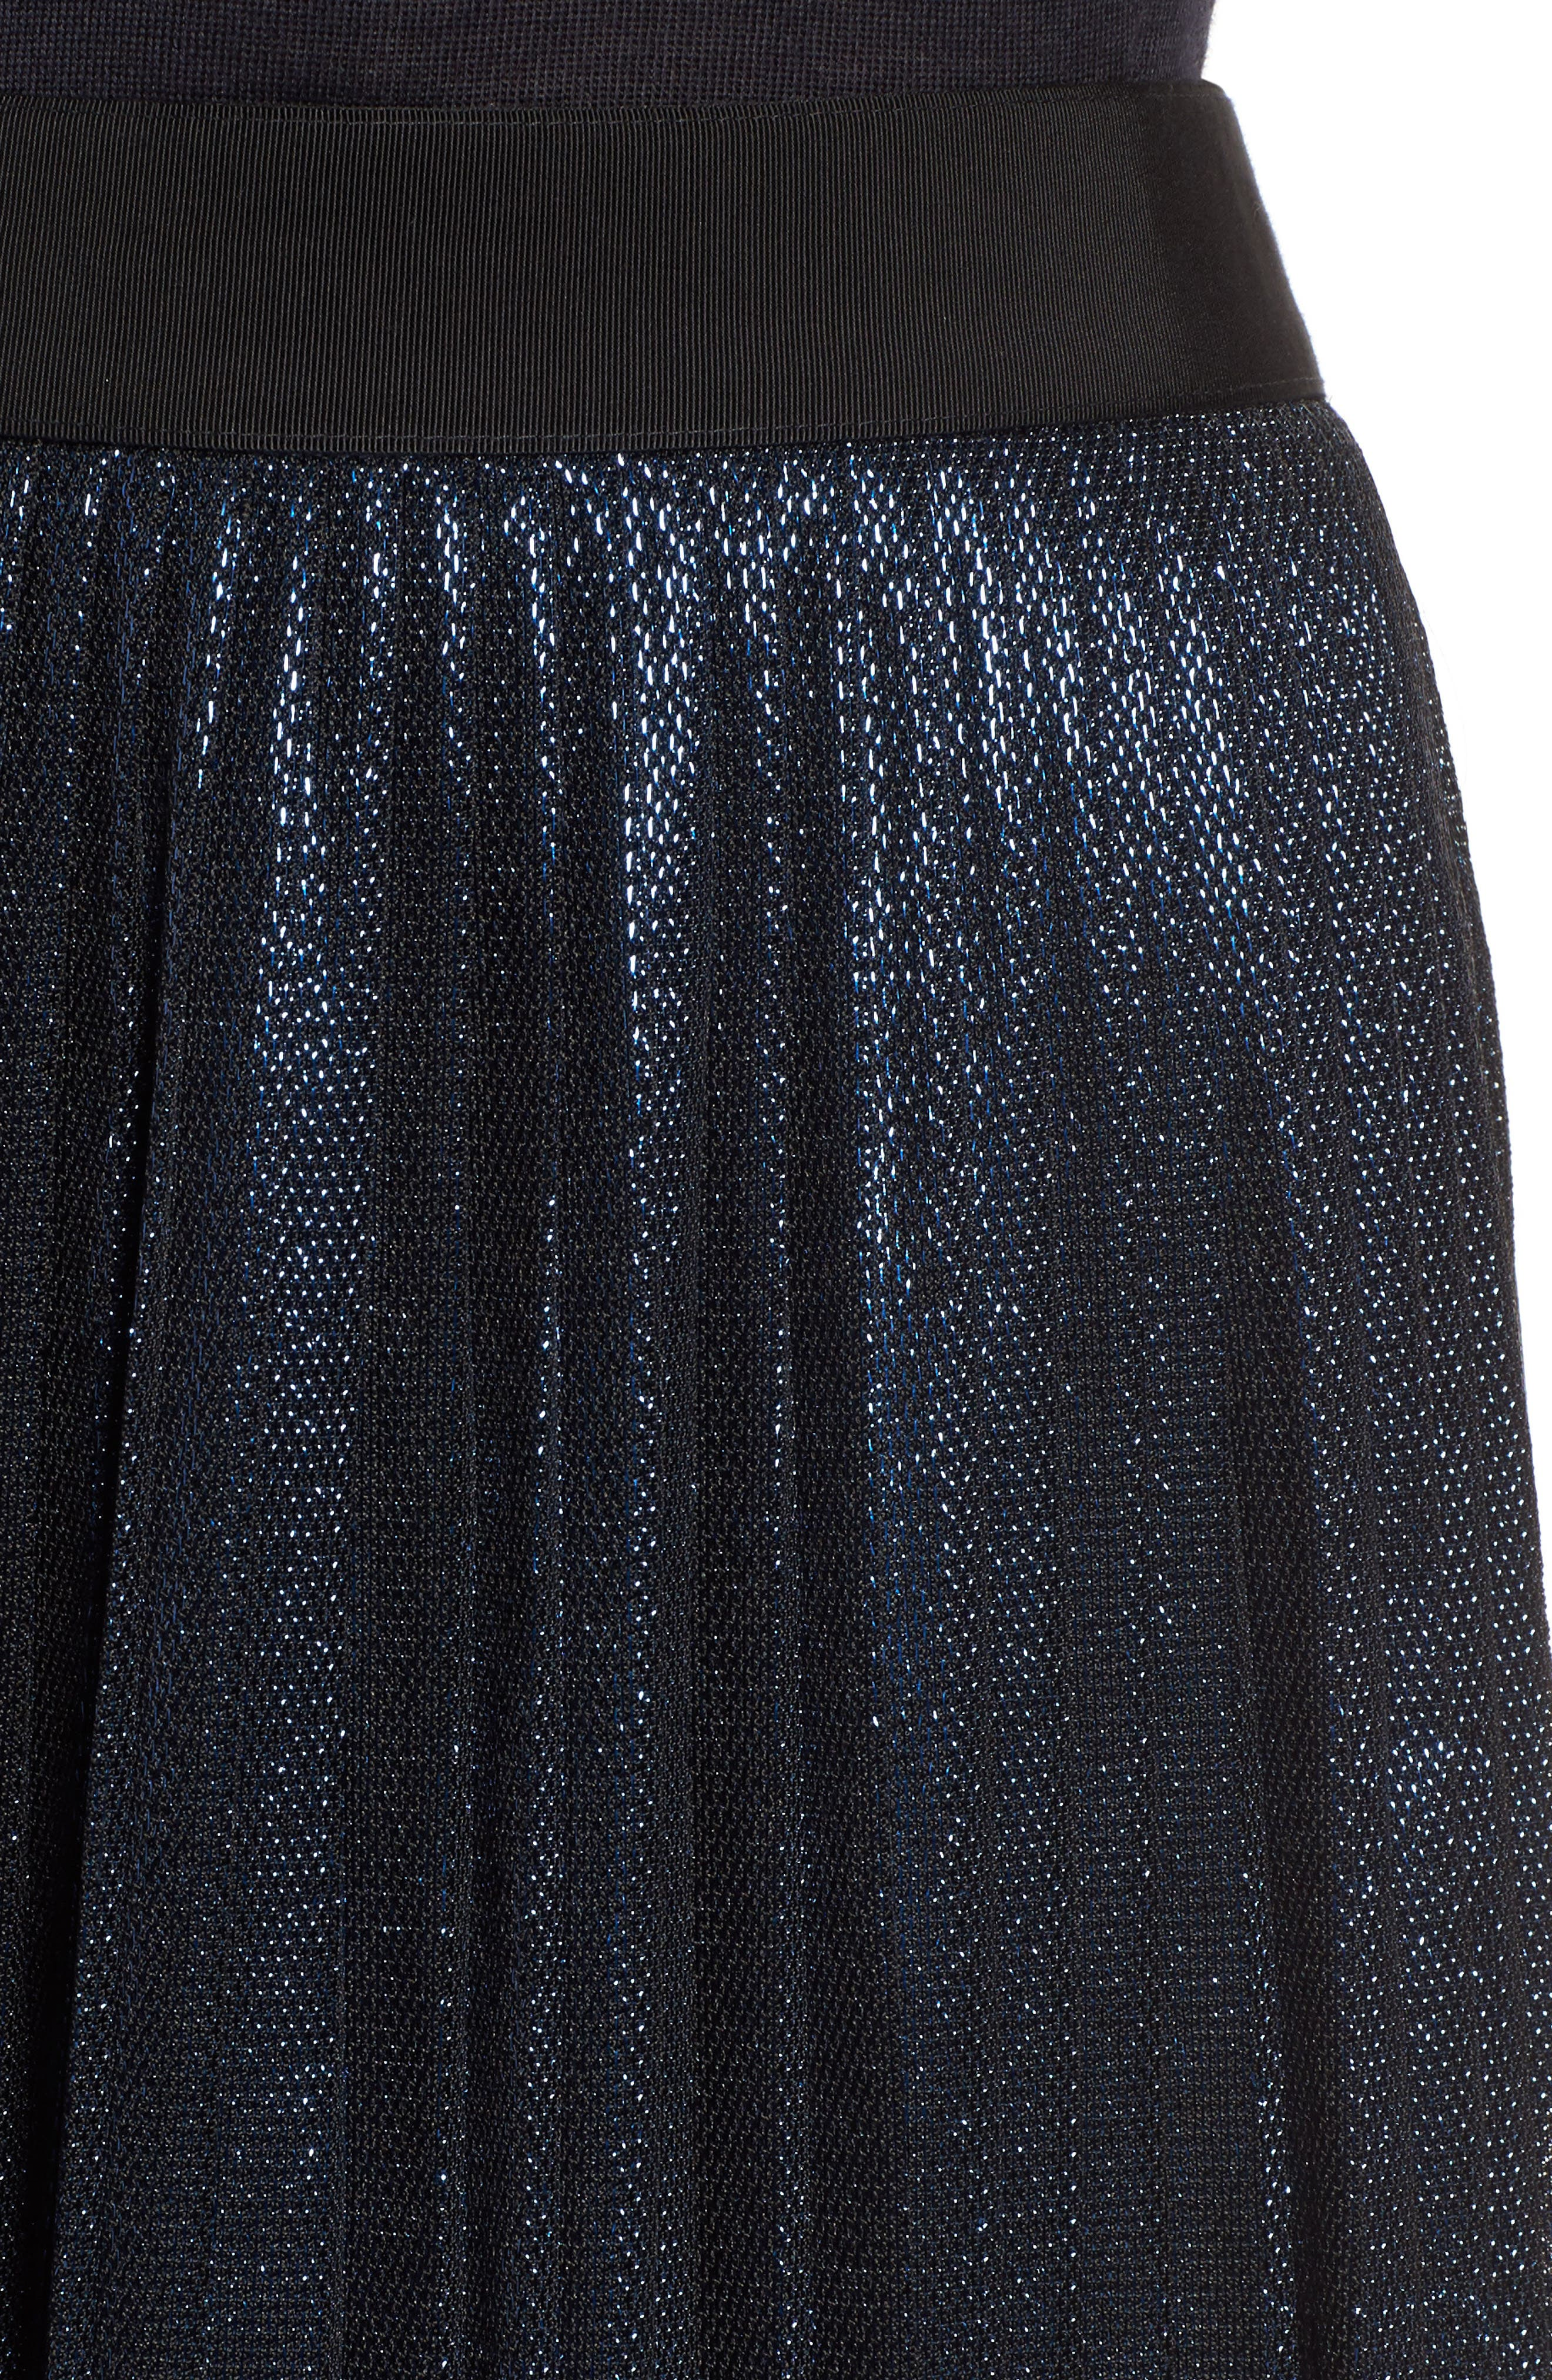 Miplisa Metallic Pleated Midi Skirt,                             Alternate thumbnail 4, color,                             480